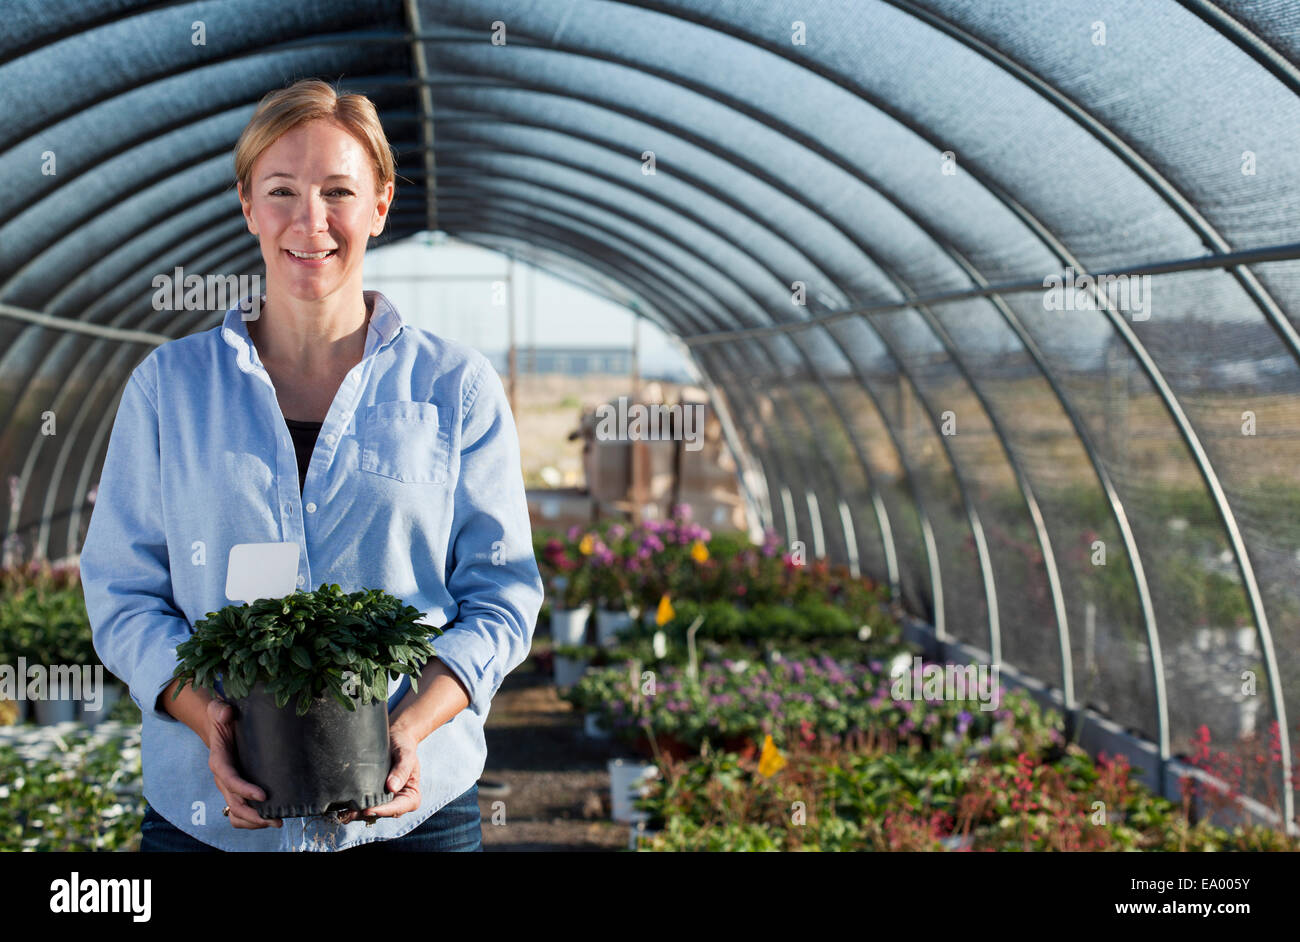 Portrait of mature female worker holding potted plant in plant nursery polytunnel Photo Stock